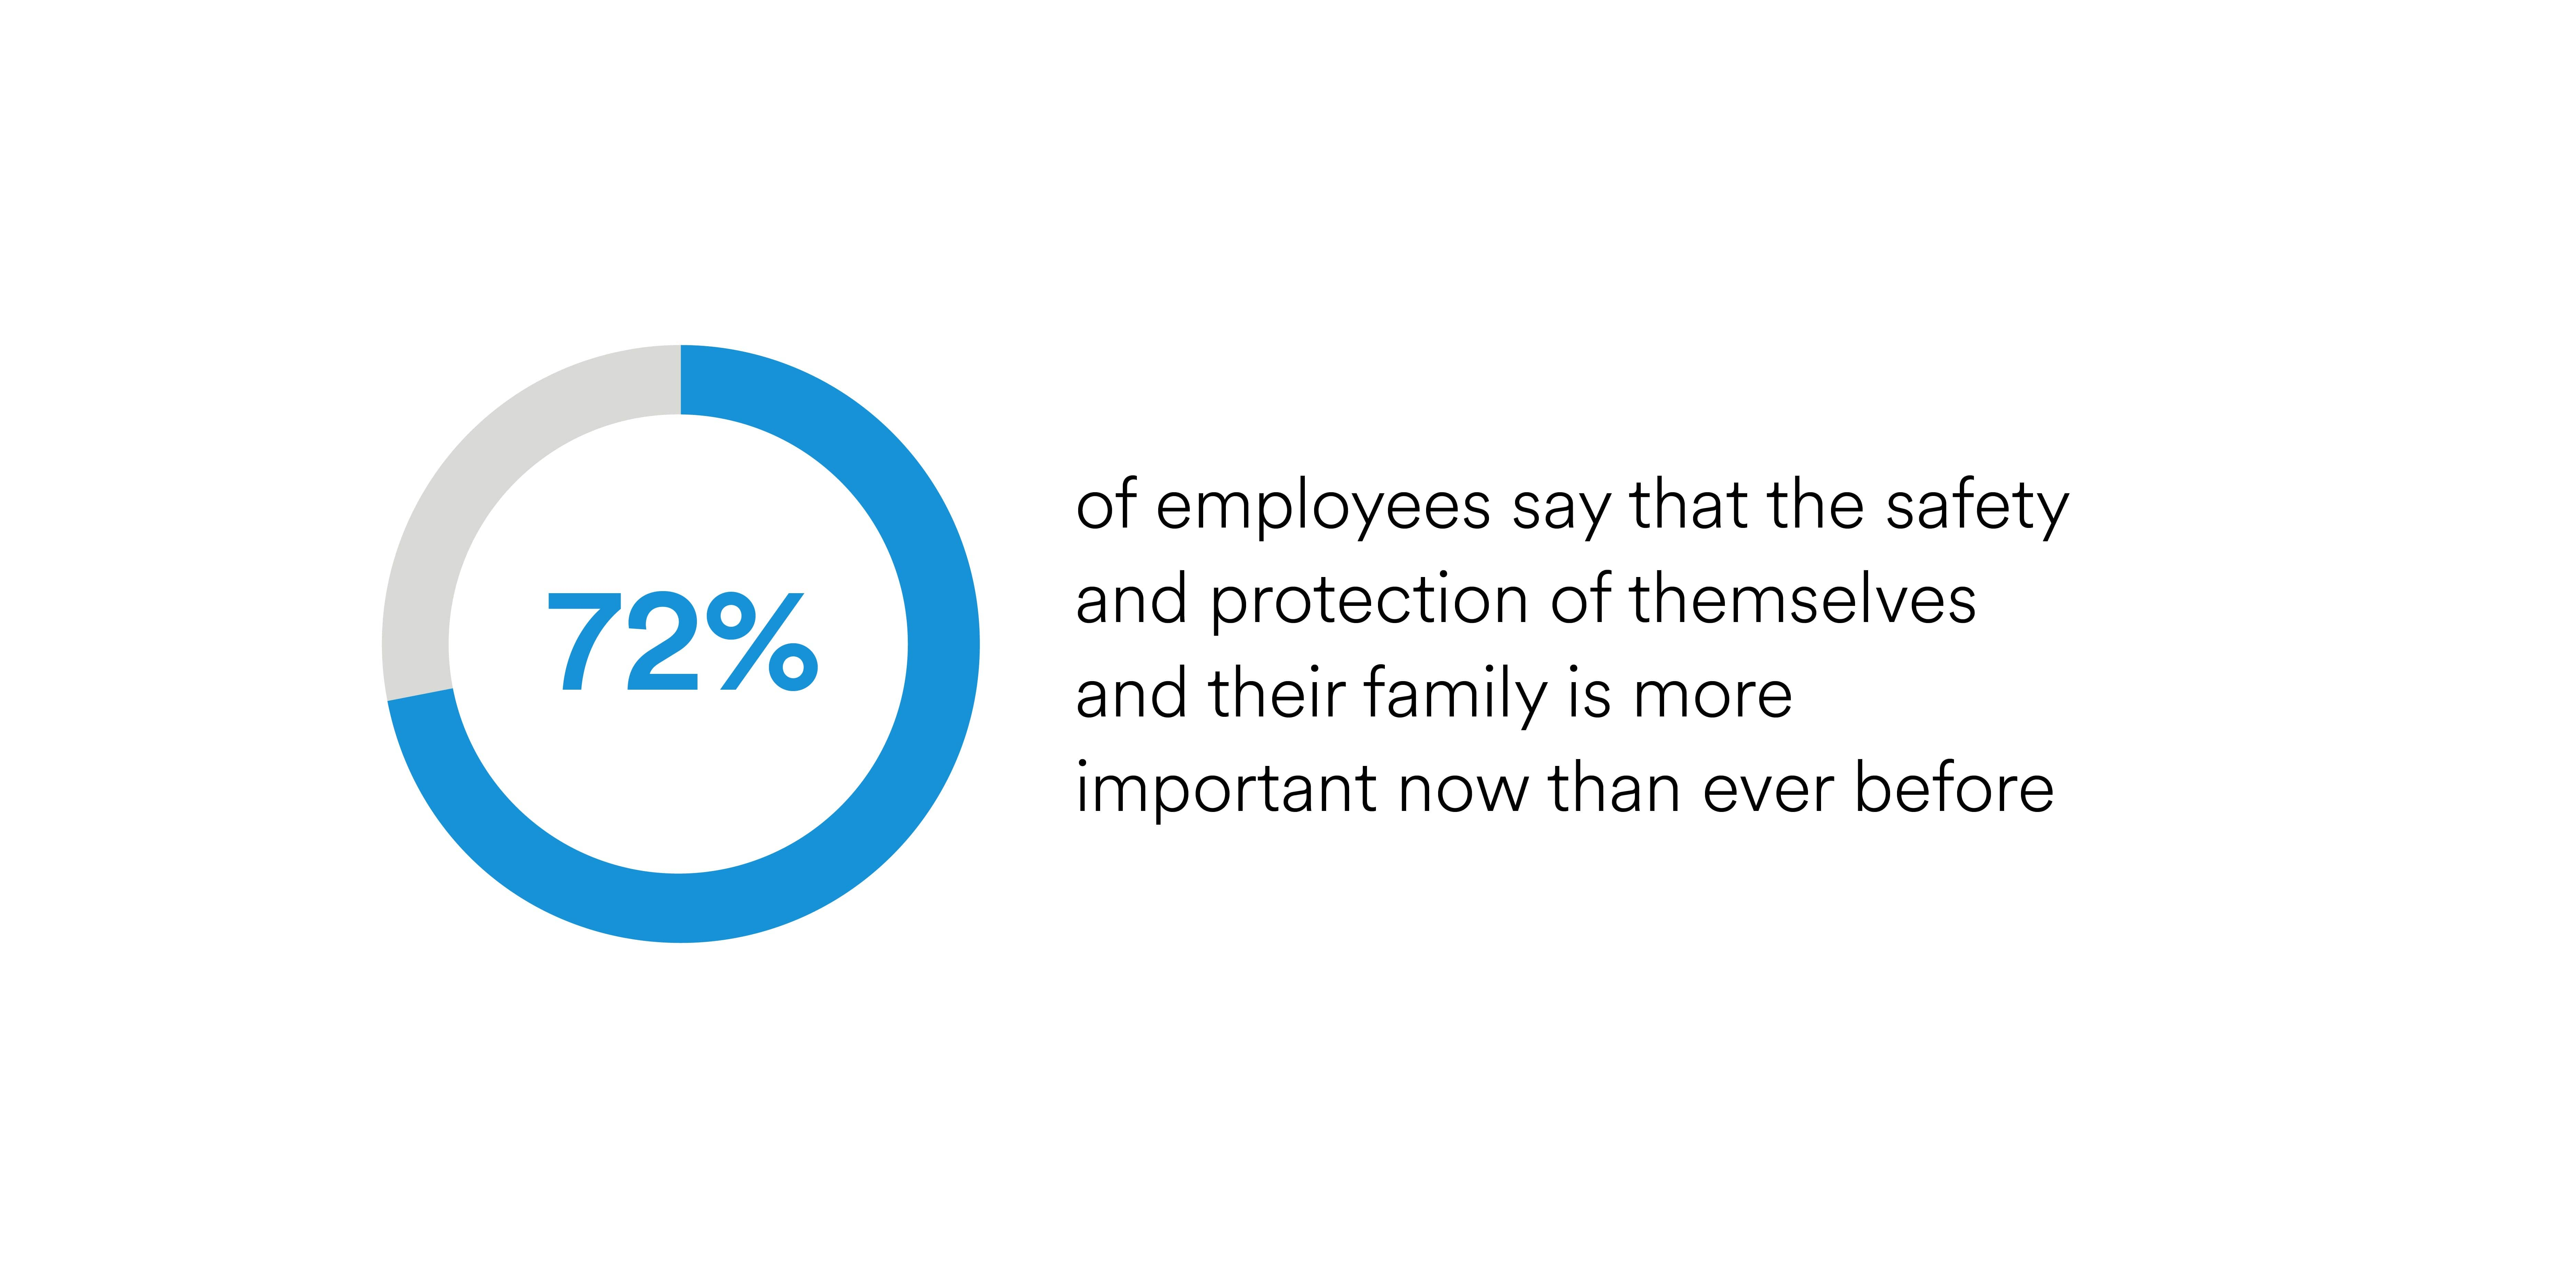 72 percent of employees think family safety and protection are more important now